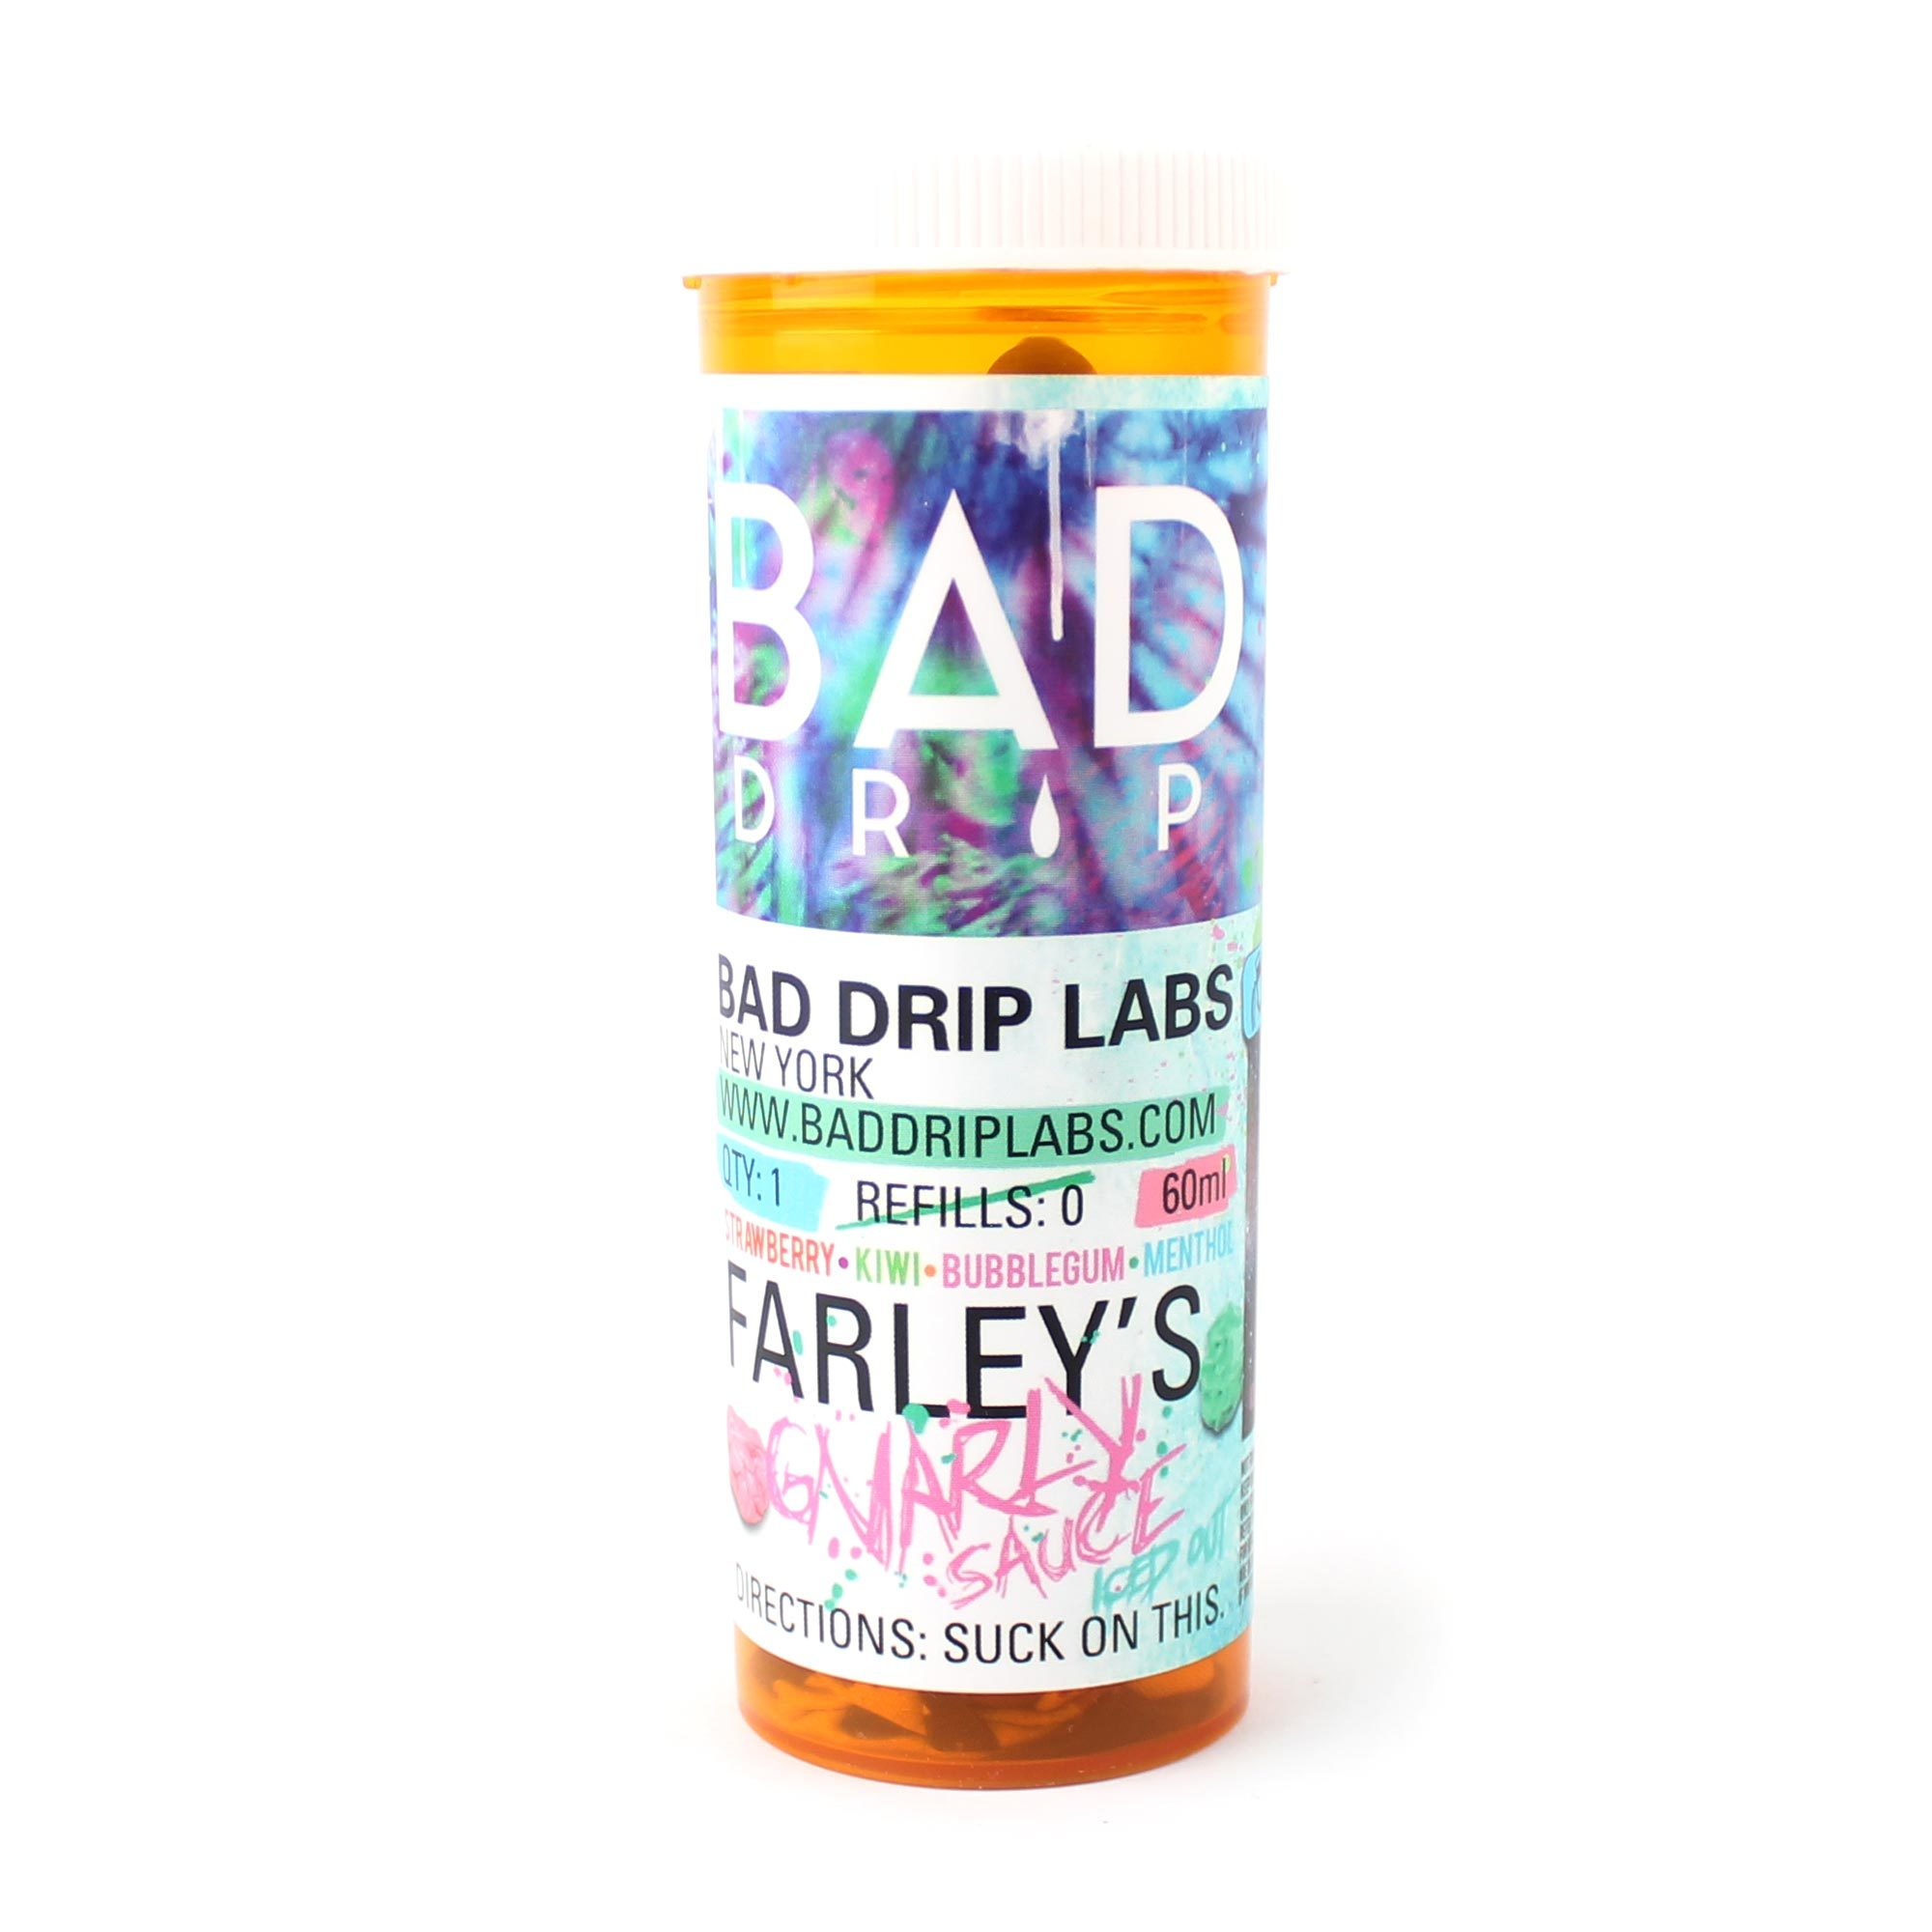 Жидкость Bad Drip Iced Farley's Gnarly Sauce 60 мл